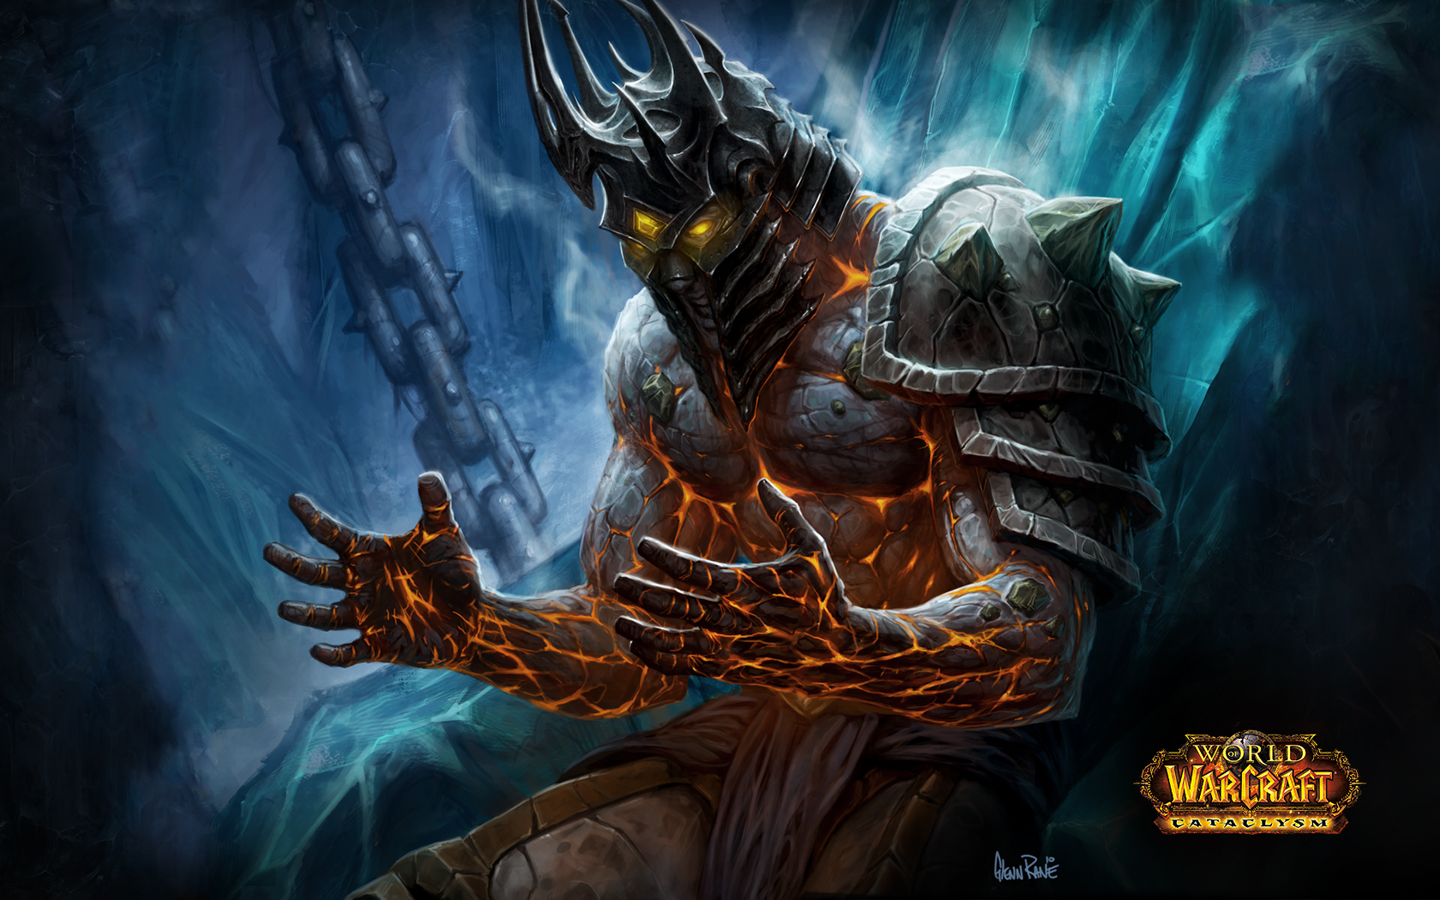 wow wallpaper - jailor of the damned 1440x900 - MMORPG Photo - MMOsite.com